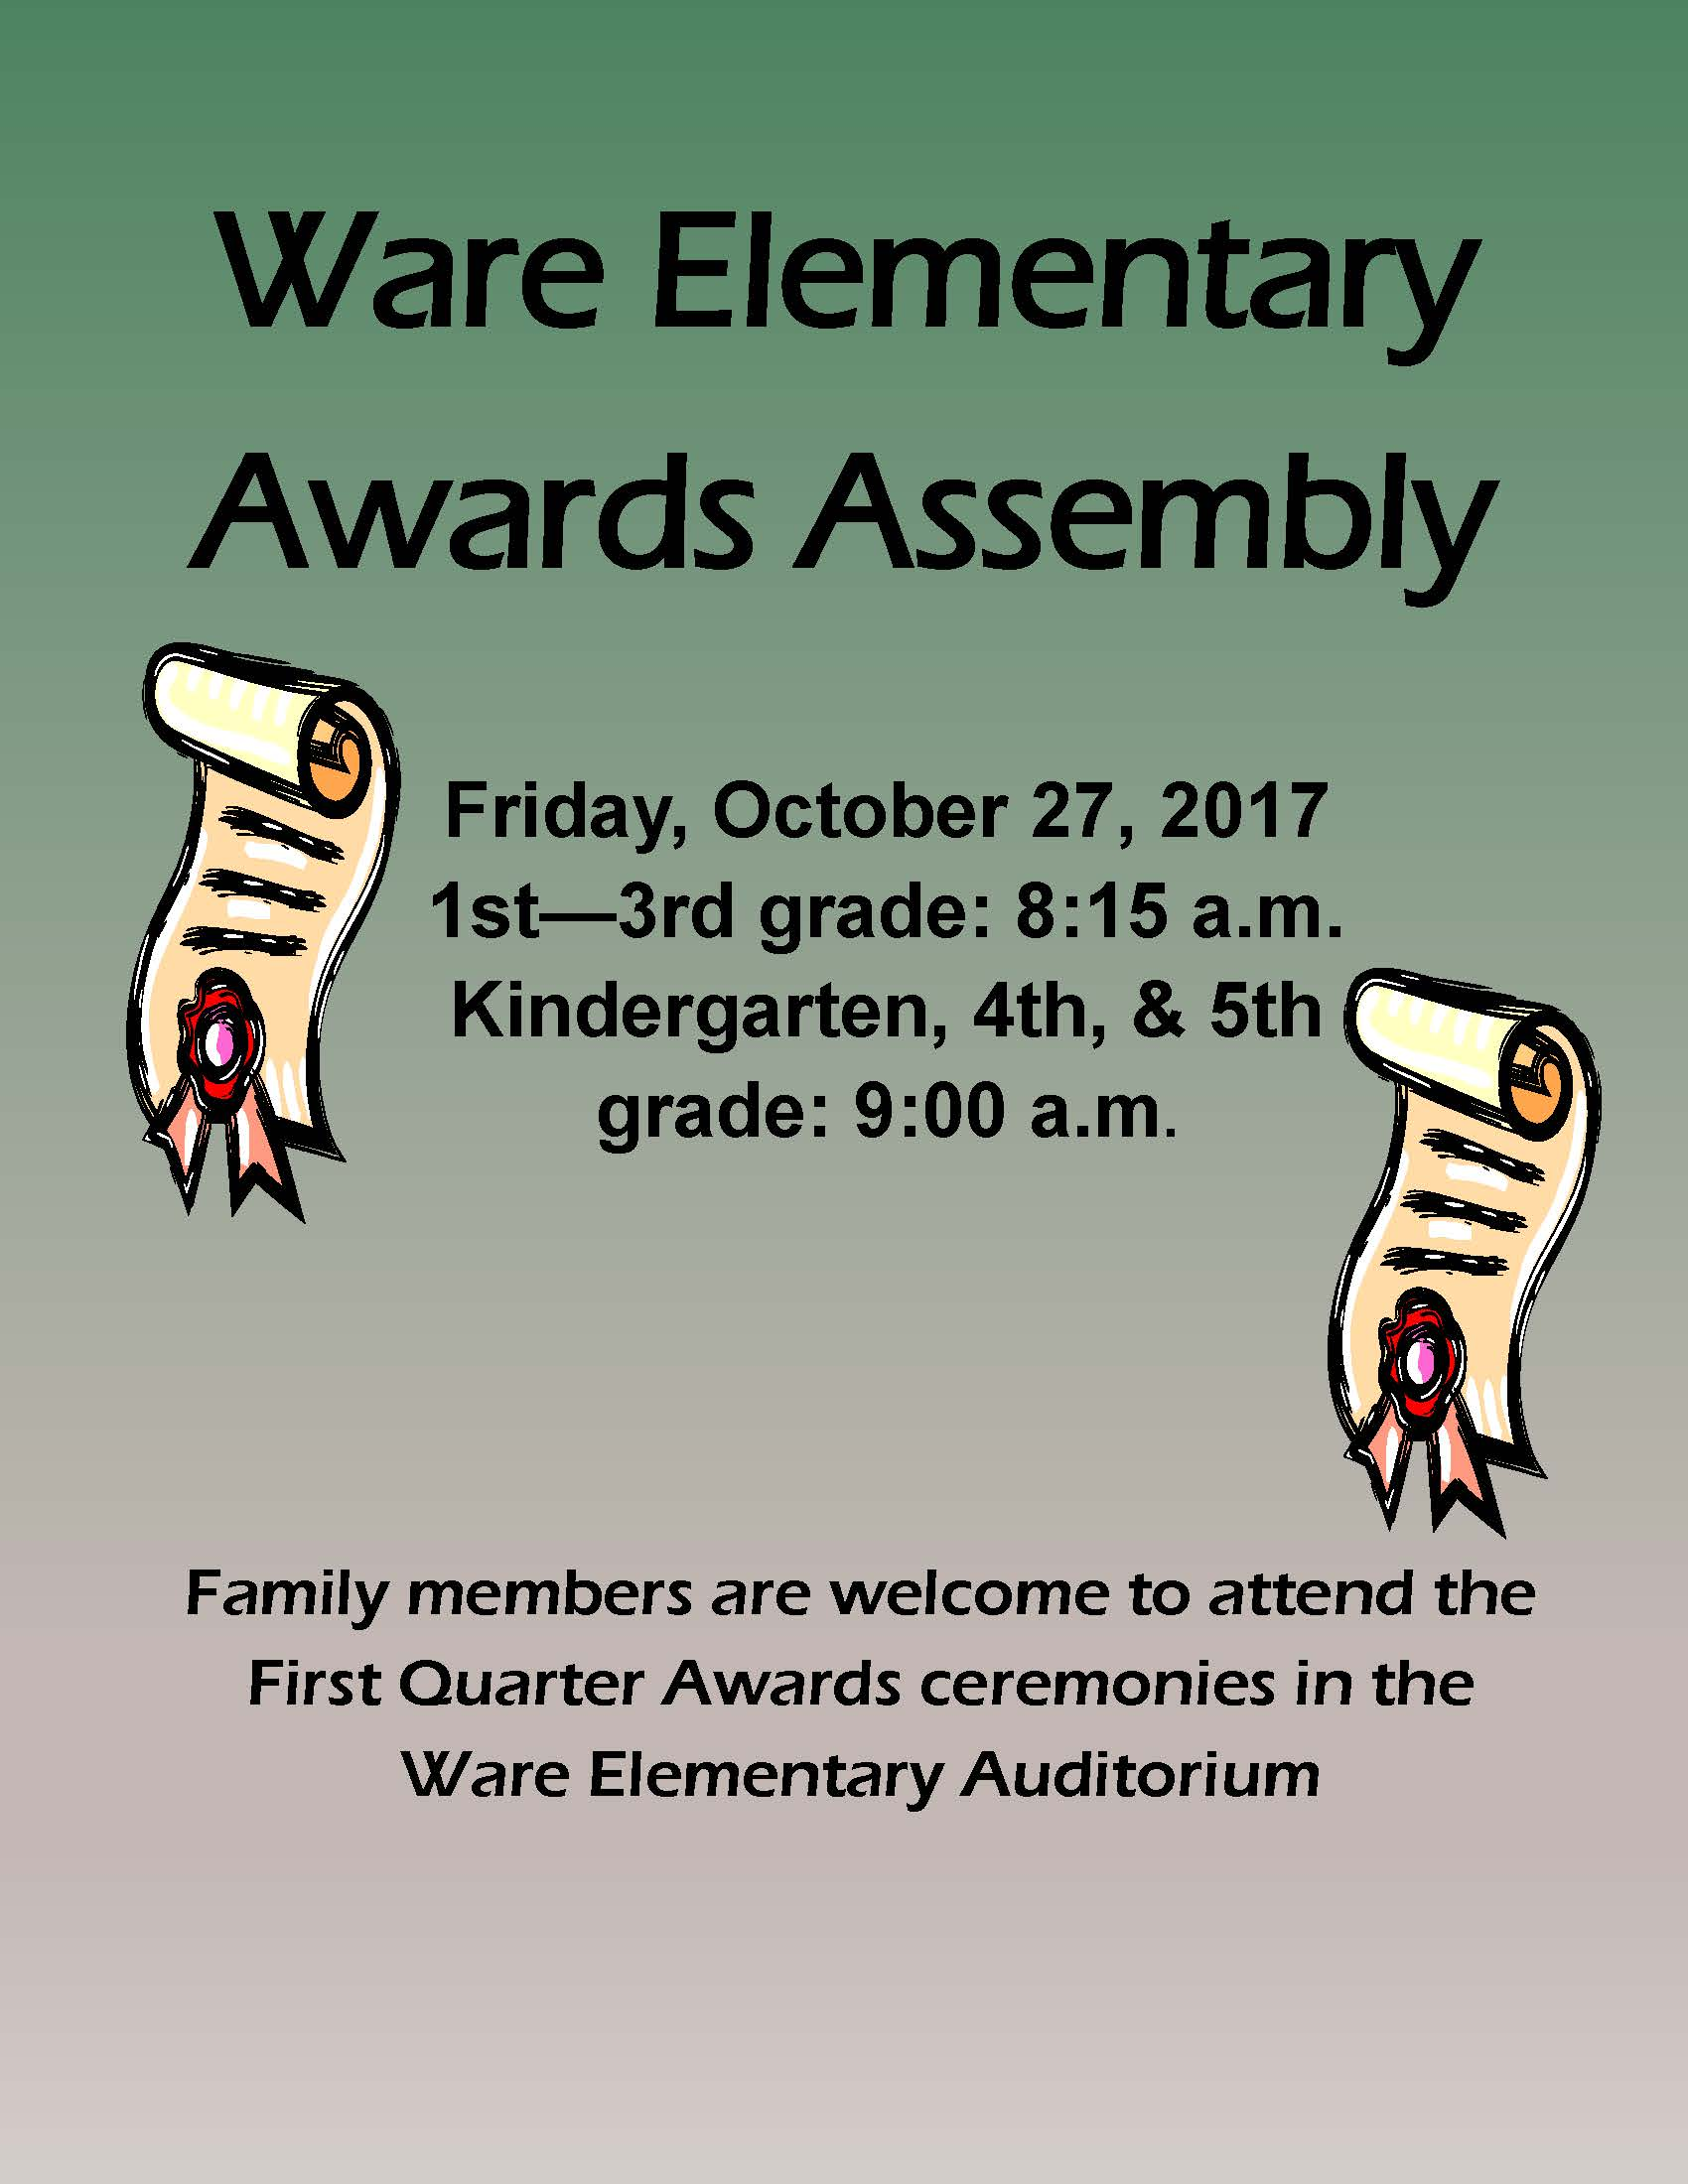 Ware Elementary Awards Assembly Flyer